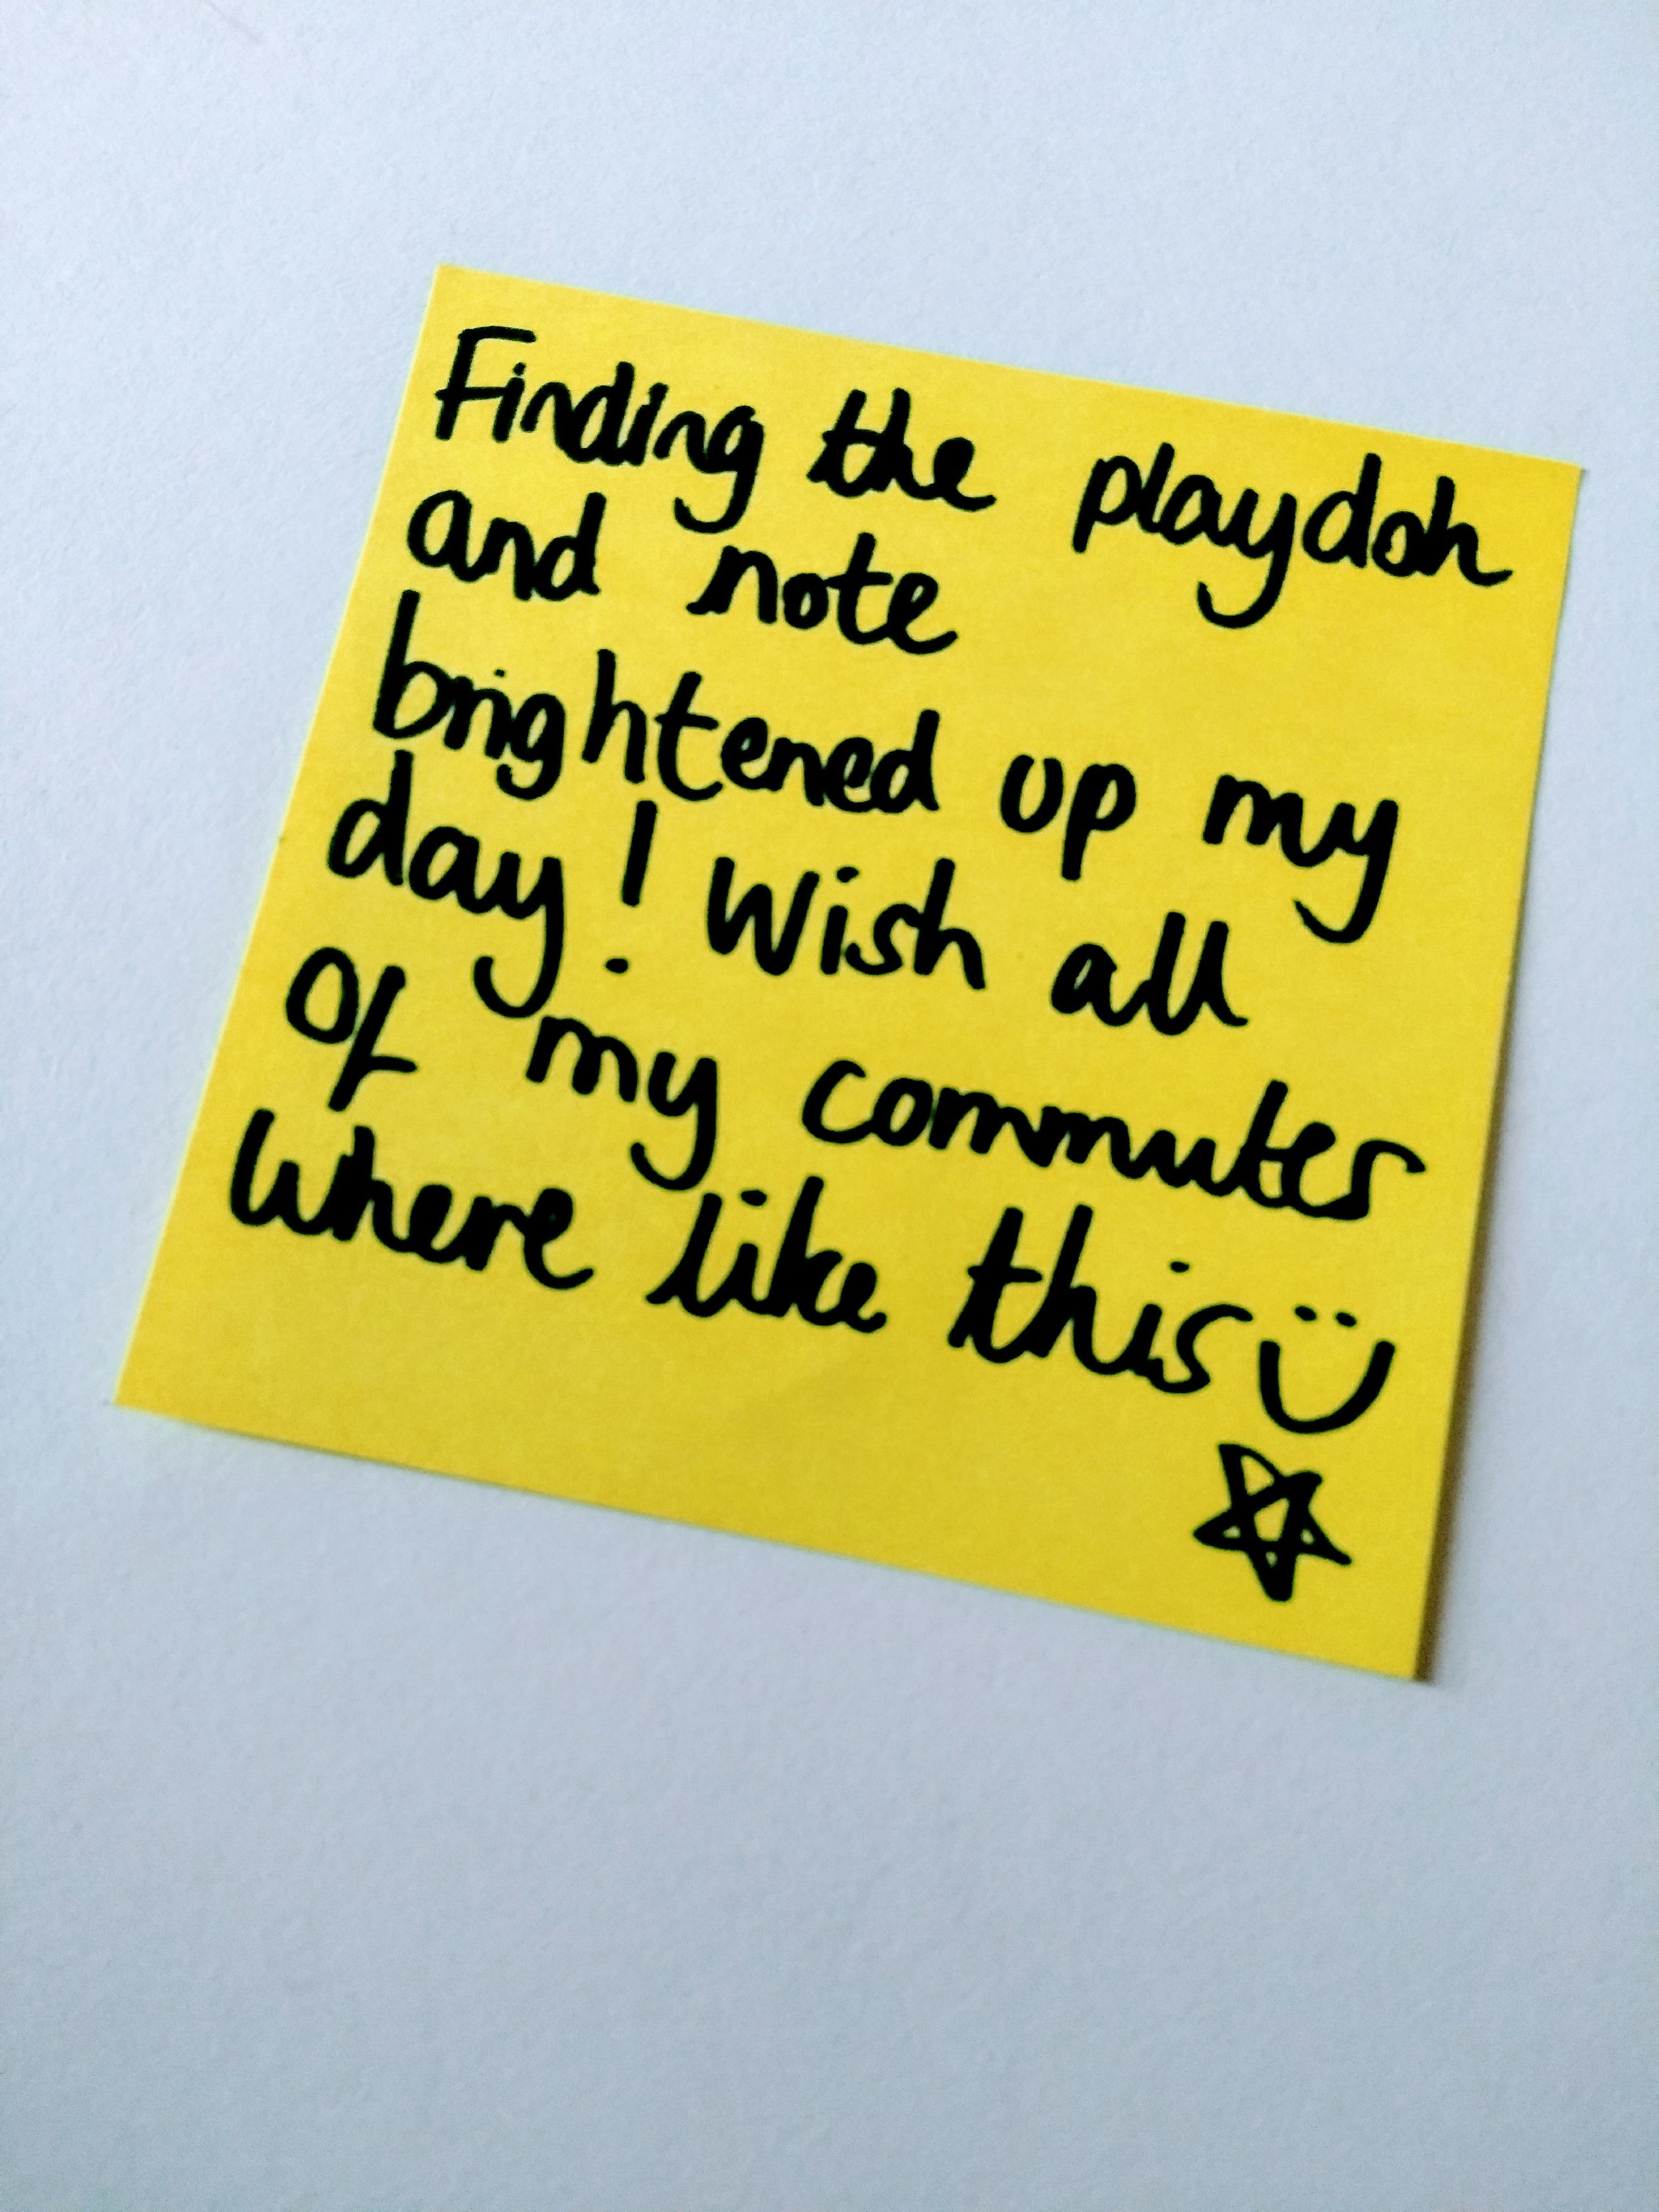 A lovely note from a lovely commuter.